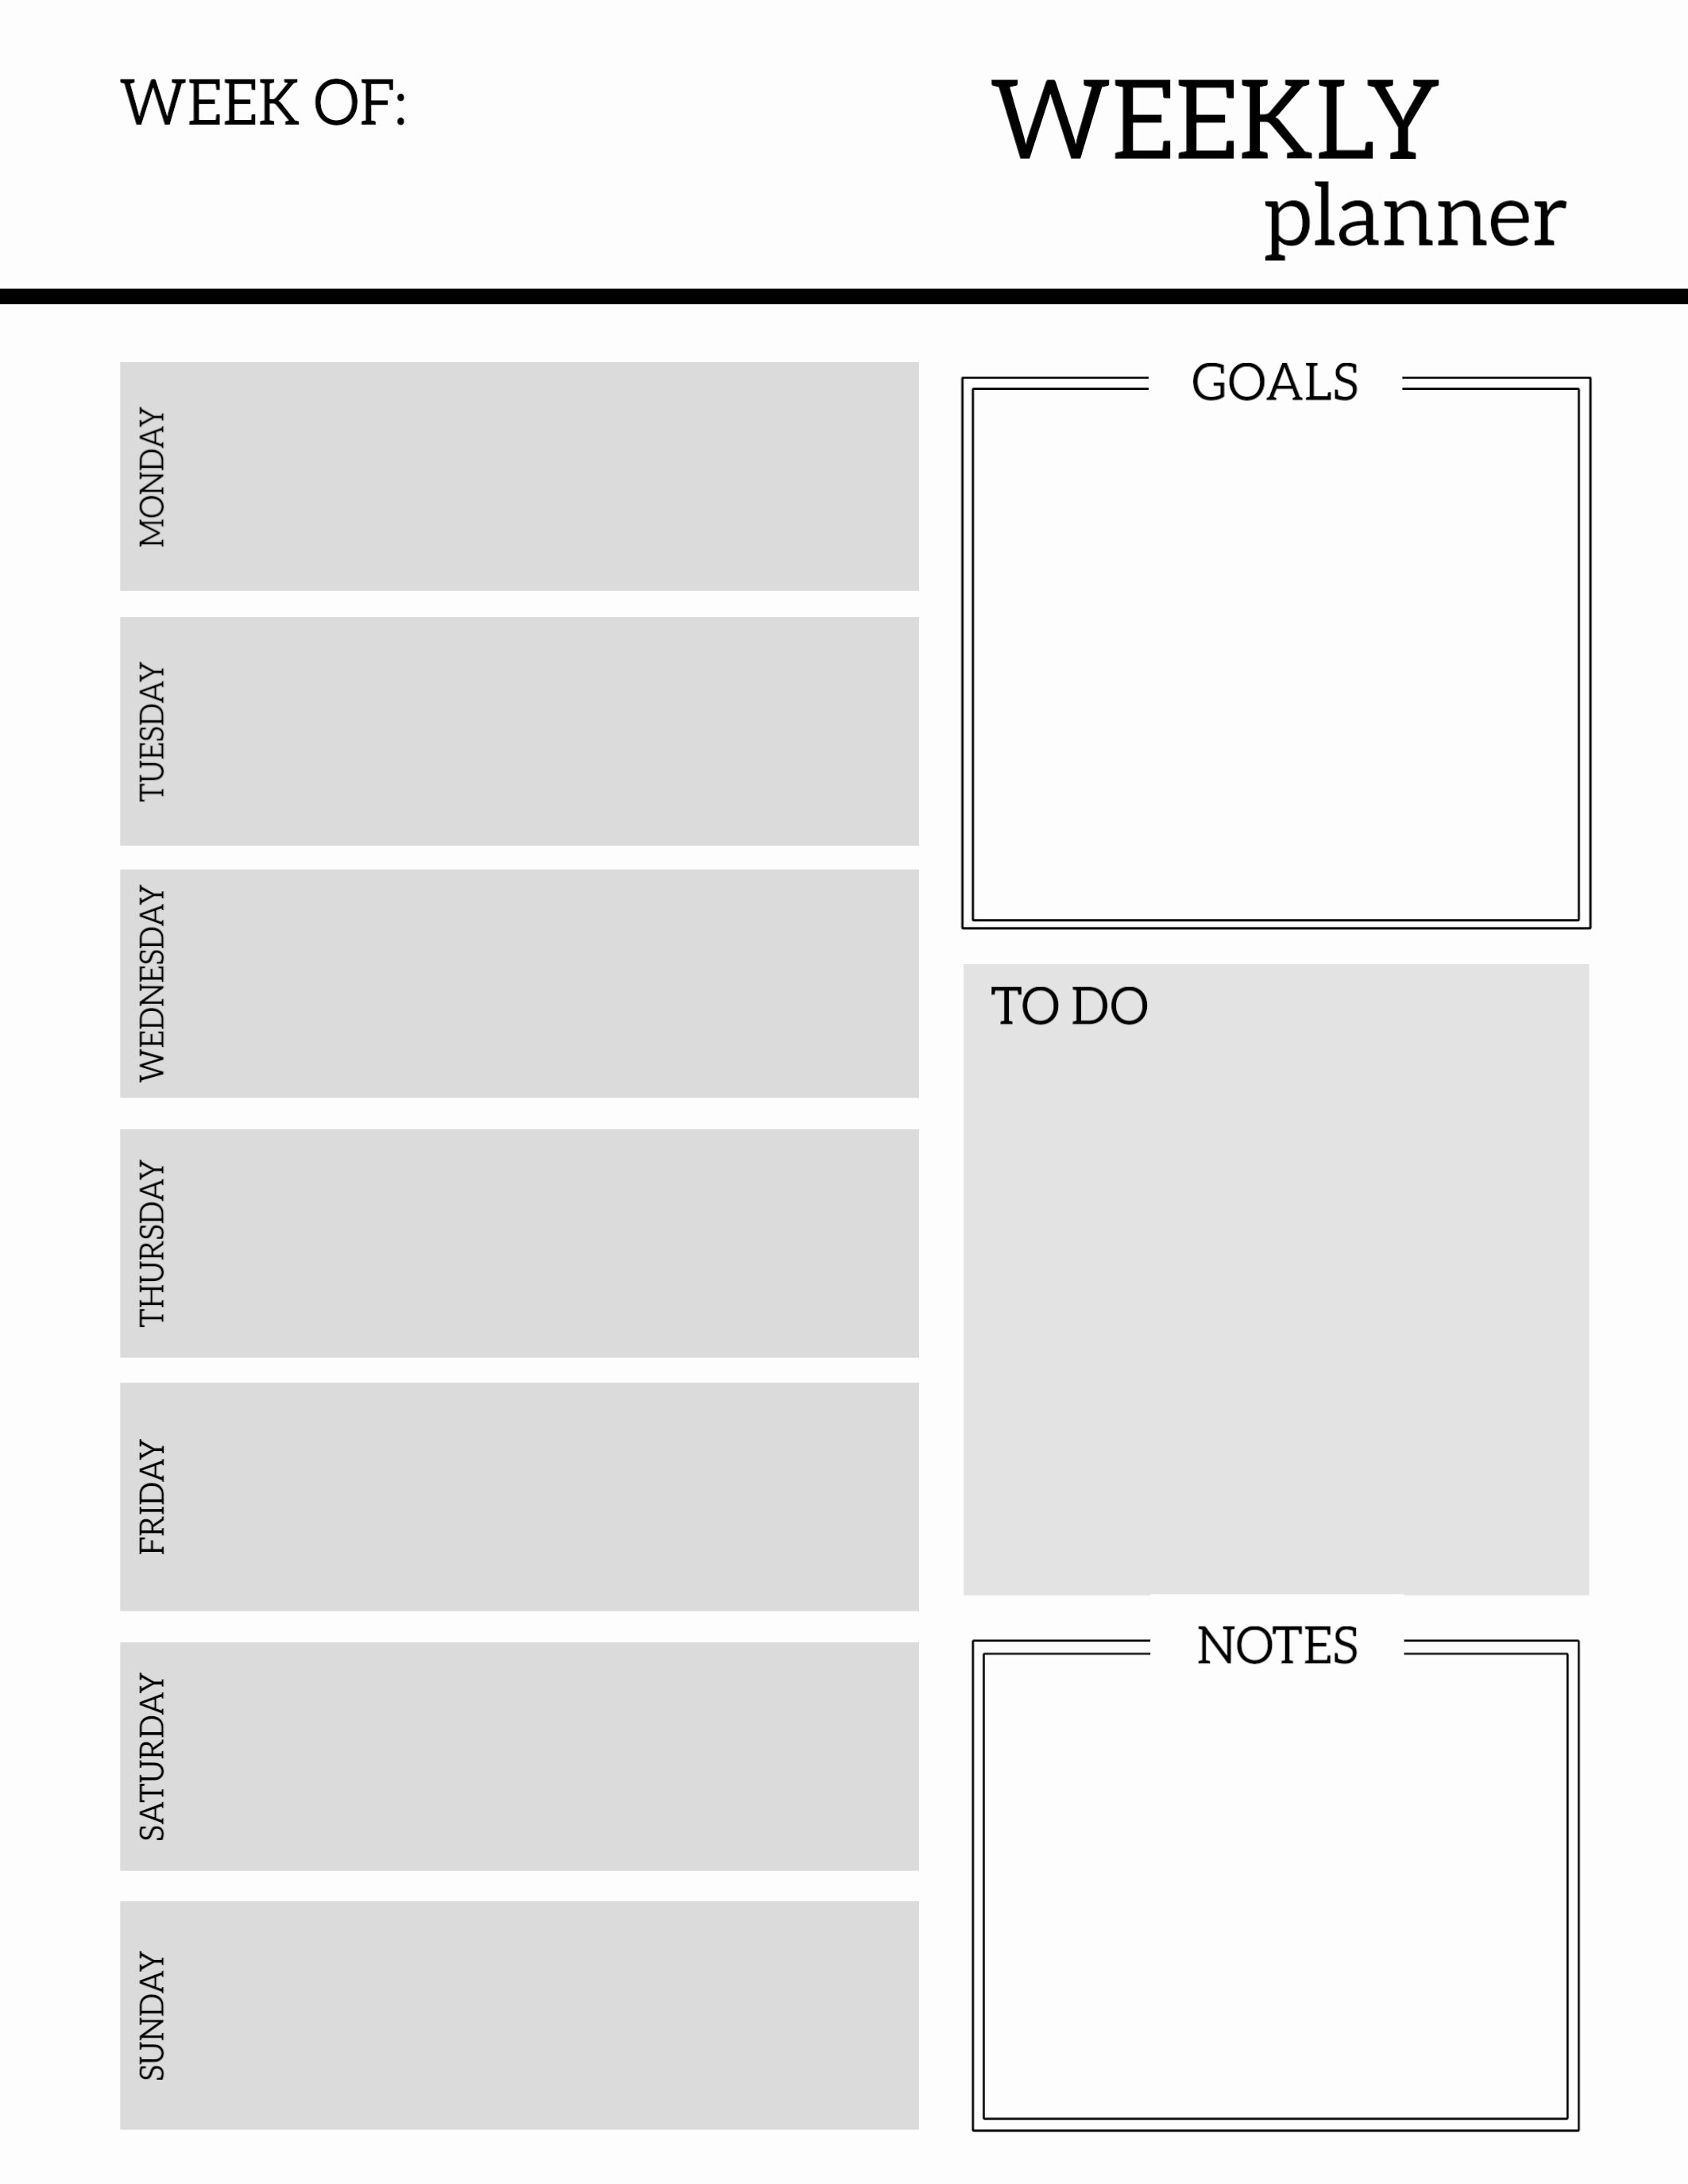 Printable Daily Planner Template Inspirational Free Printable Weekly Planner Pages Paper Trail Design